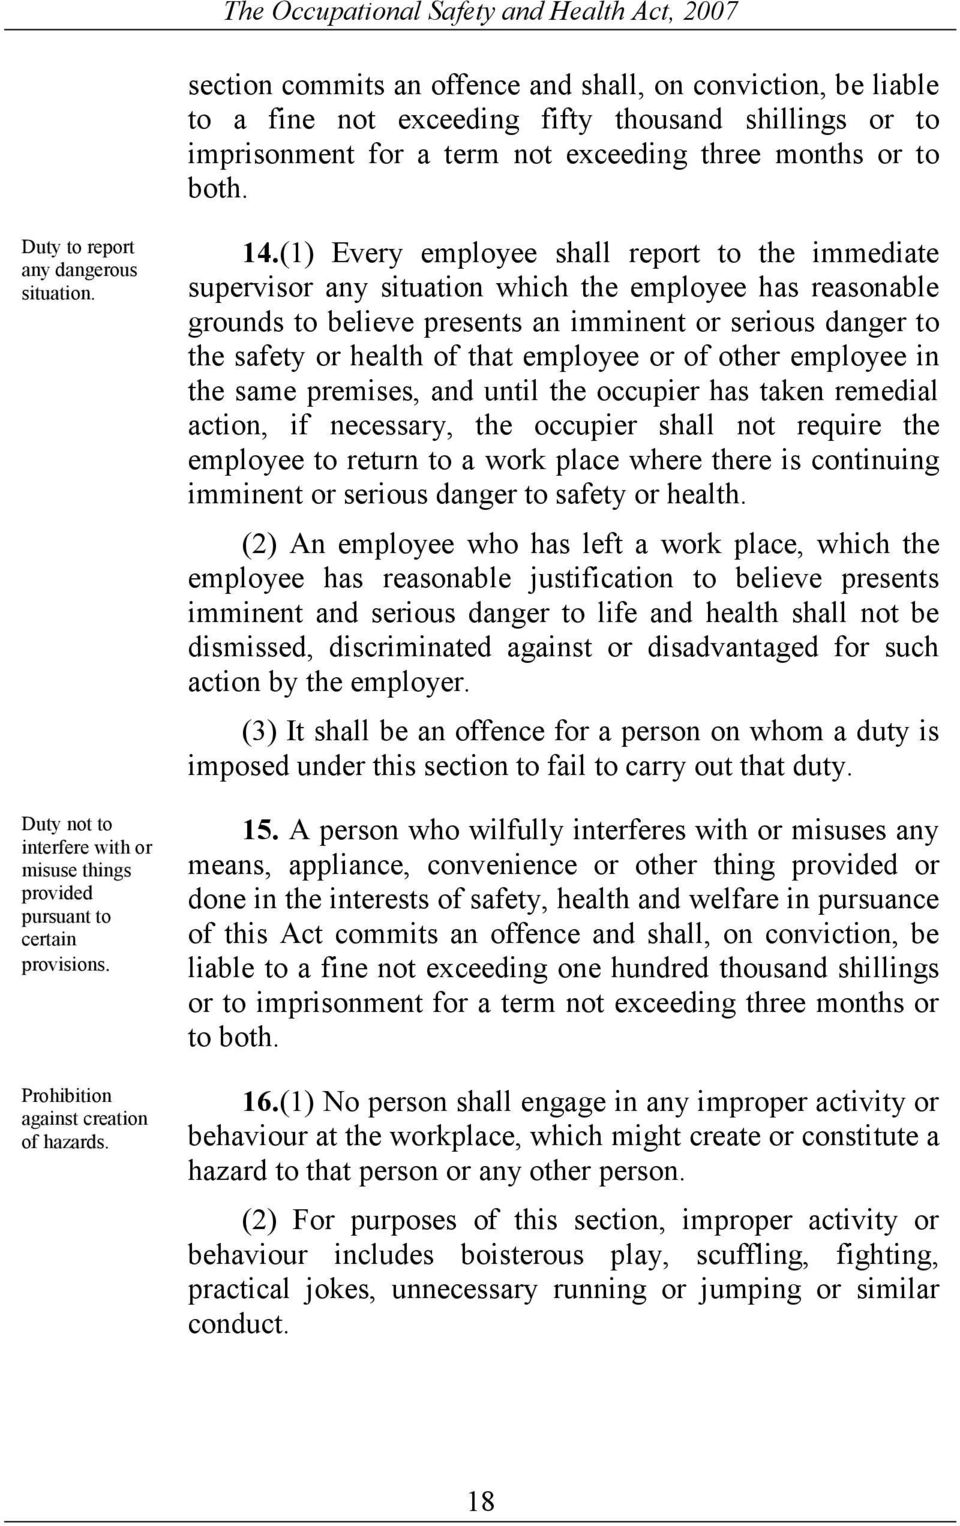 (1) Every employee shall report to the immediate supervisor any situation which the employee has reasonable grounds to believe presents an imminent or serious danger to the safety or health of that